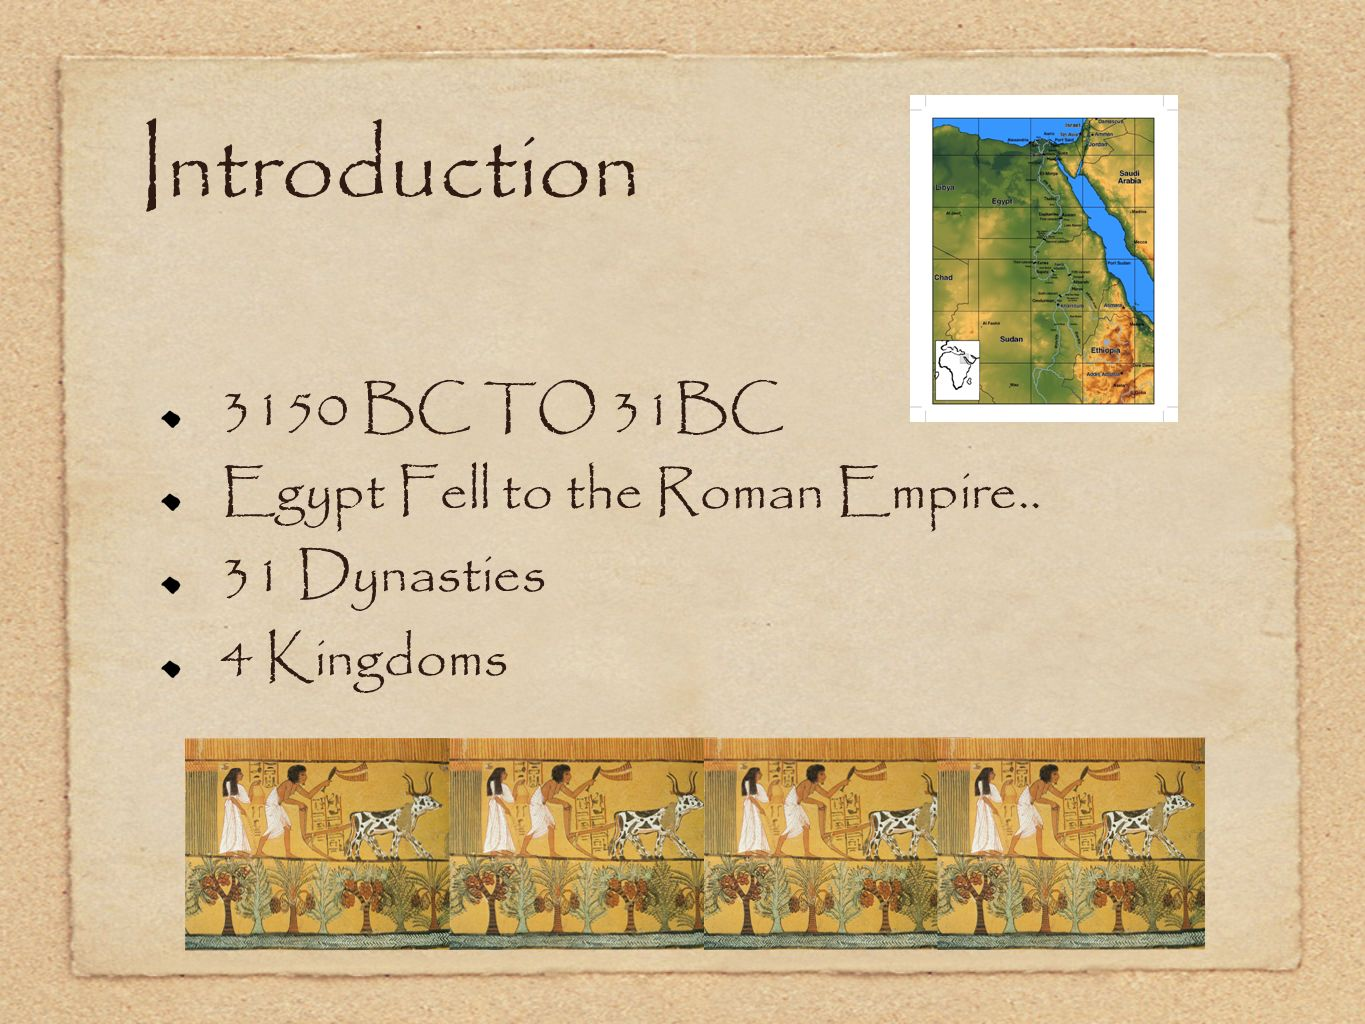 an introduction to the roman empire An introduction to the roman empire no single culture has affected the development of the modern world as deeply as the romans in law, architecture and language the heritage of rome is so strong in europe today that some academics claim that the roman empire has never really gone away.